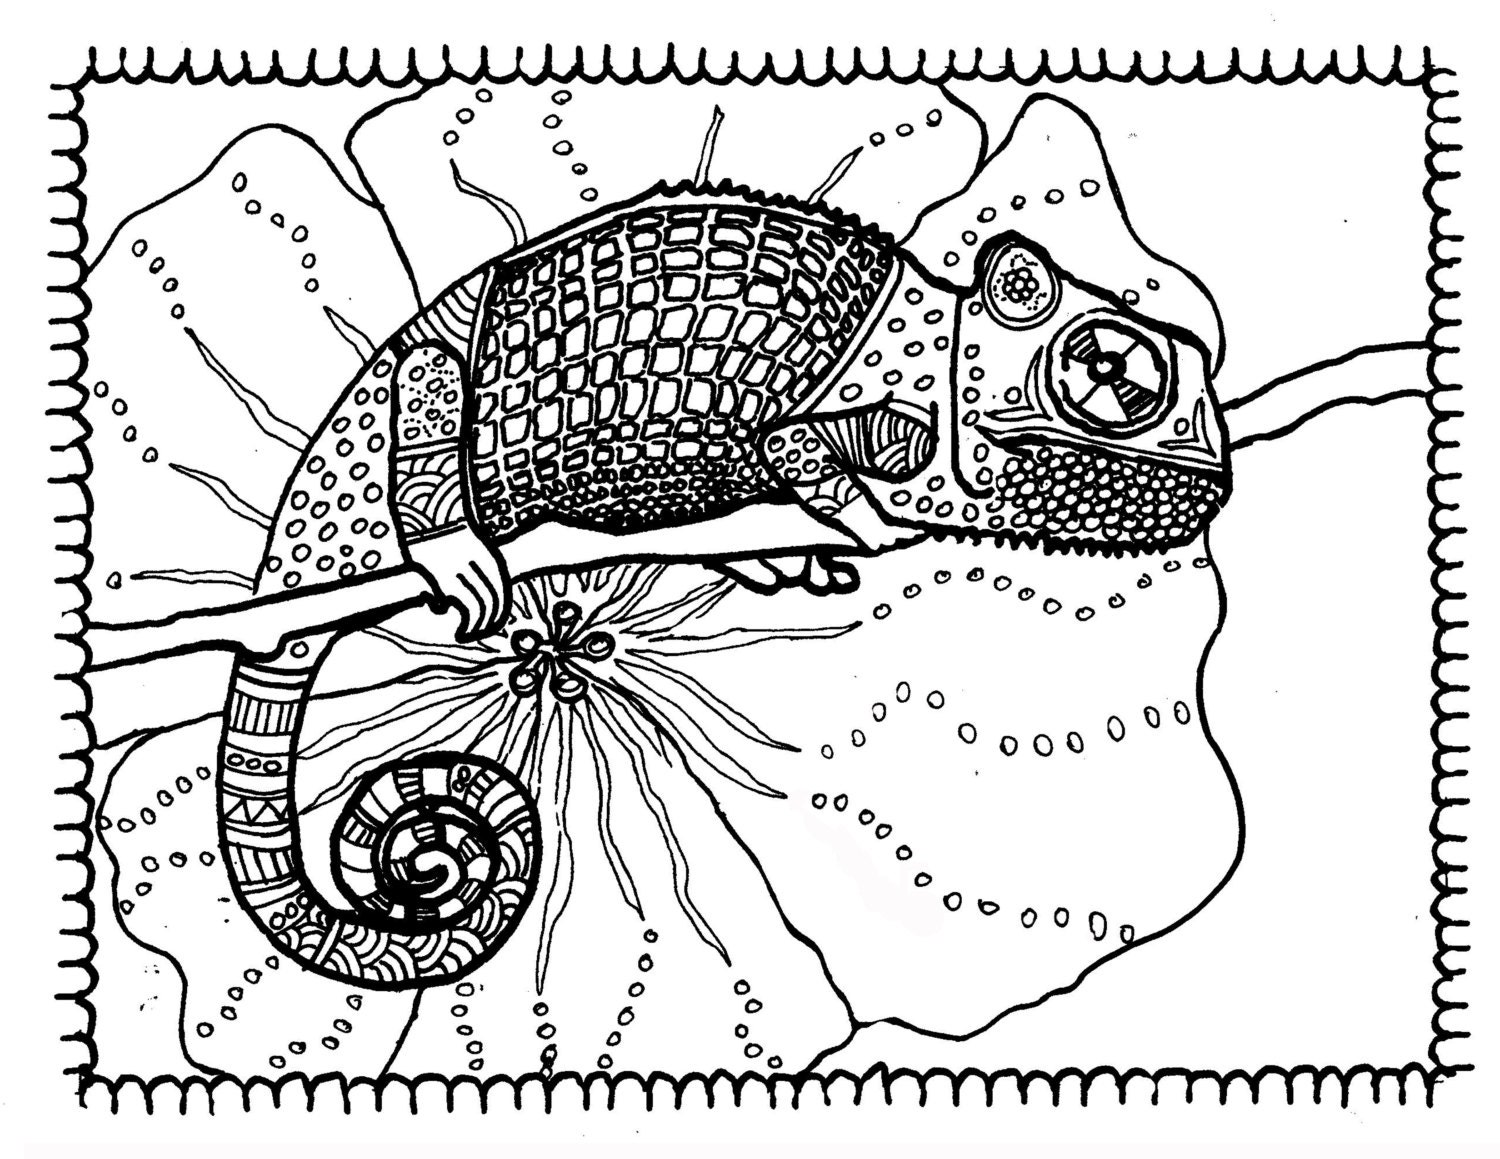 Gecko 8 by 11 coloring page adult coloring by ...